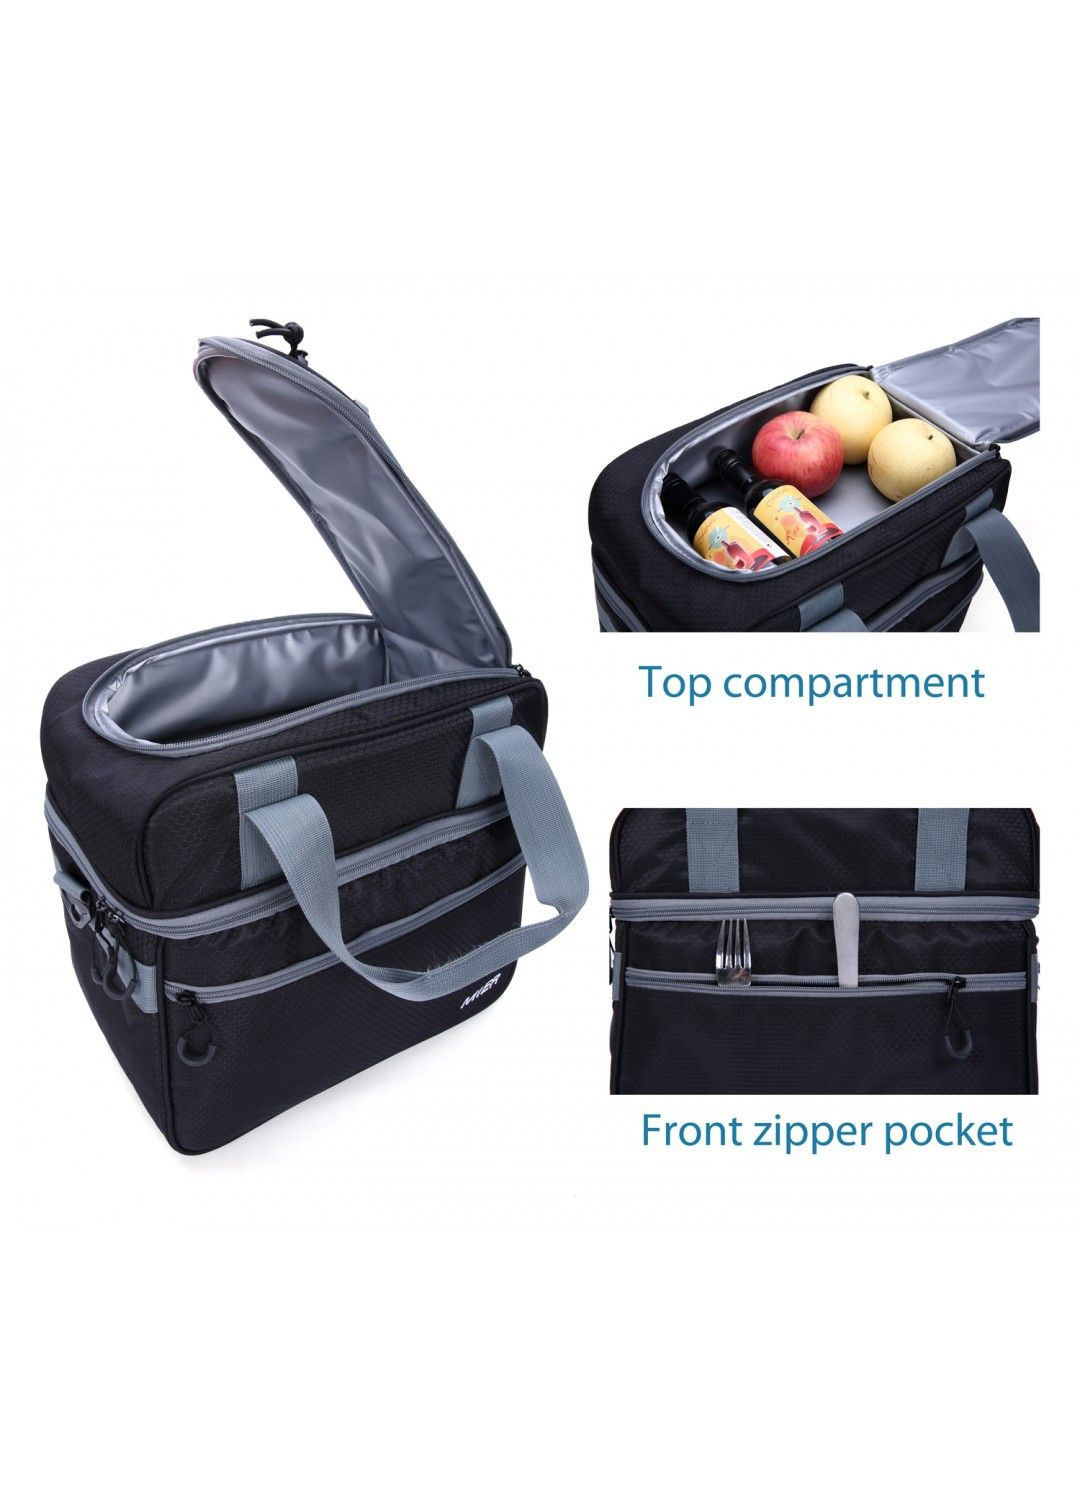 Mier Double Compartment Cooler Bag Large Insulated Bag For Lunch Picnic Beach Grocery Kayak Travel Camping Black Picnic Bag Fun Bags Bags